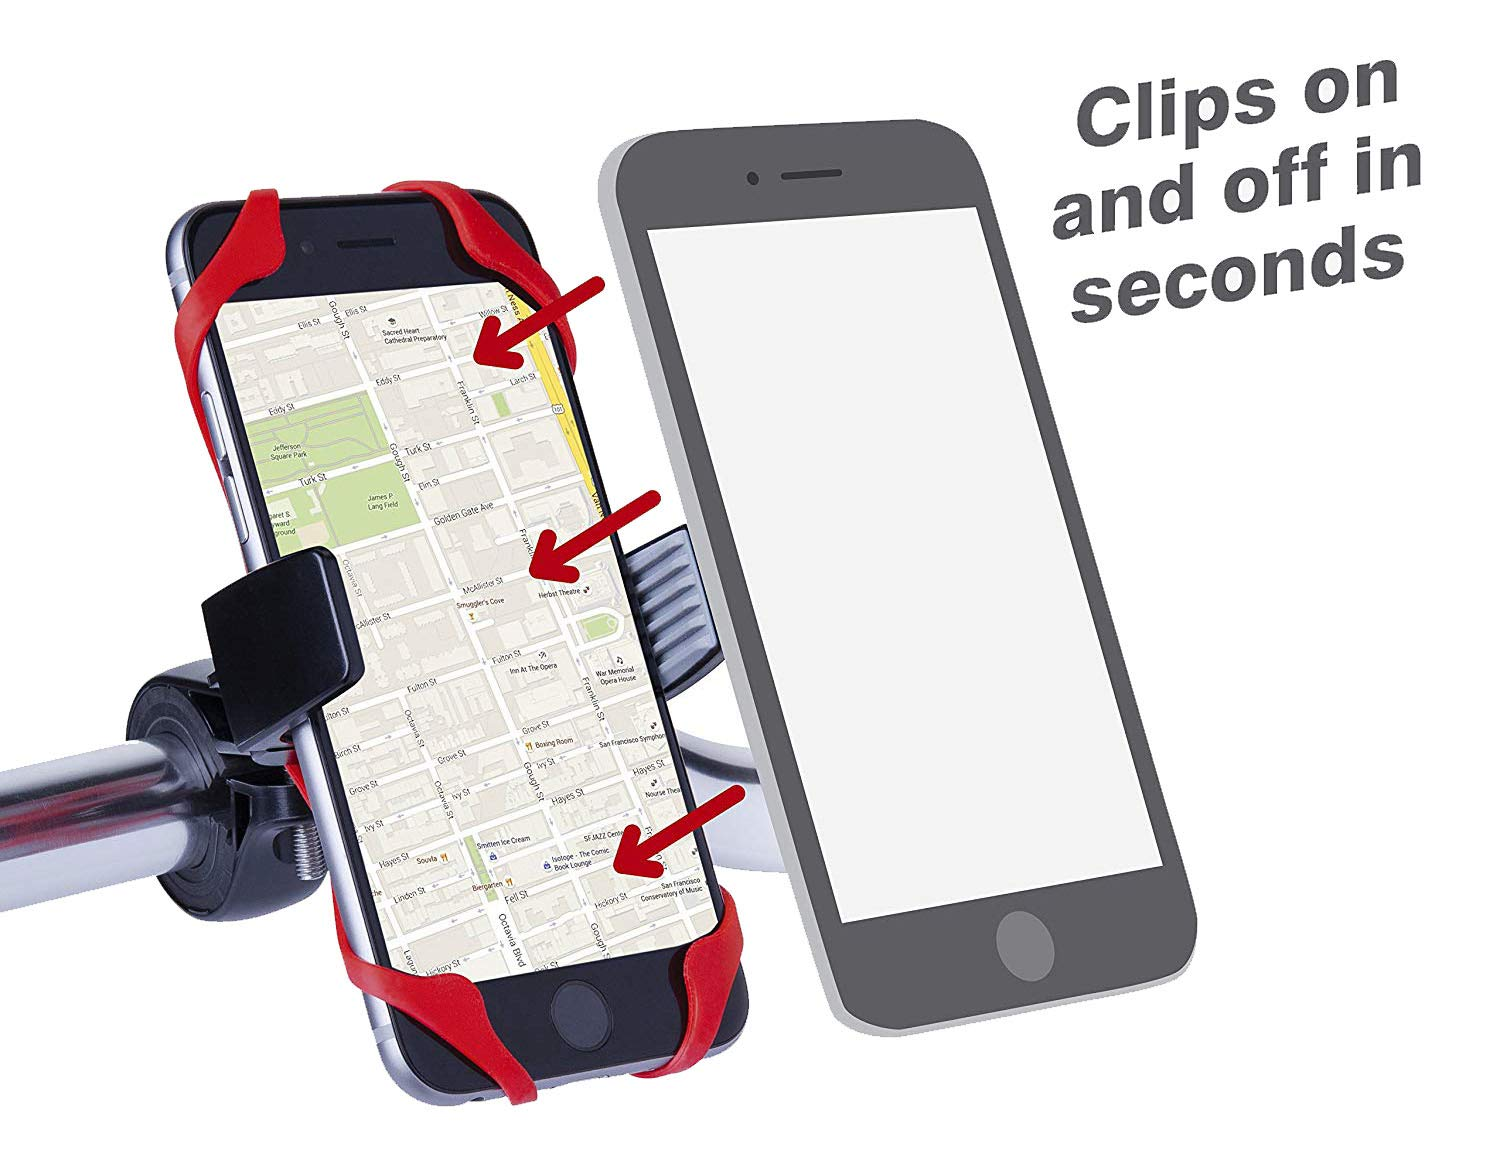 Crazywa Bike Phone Mount for iPhone,Samsung Galaxy,Motorcycle Phone Mount,Phone Holder for Bike,360 Degree Rotatable Cell Phone Mount. Black